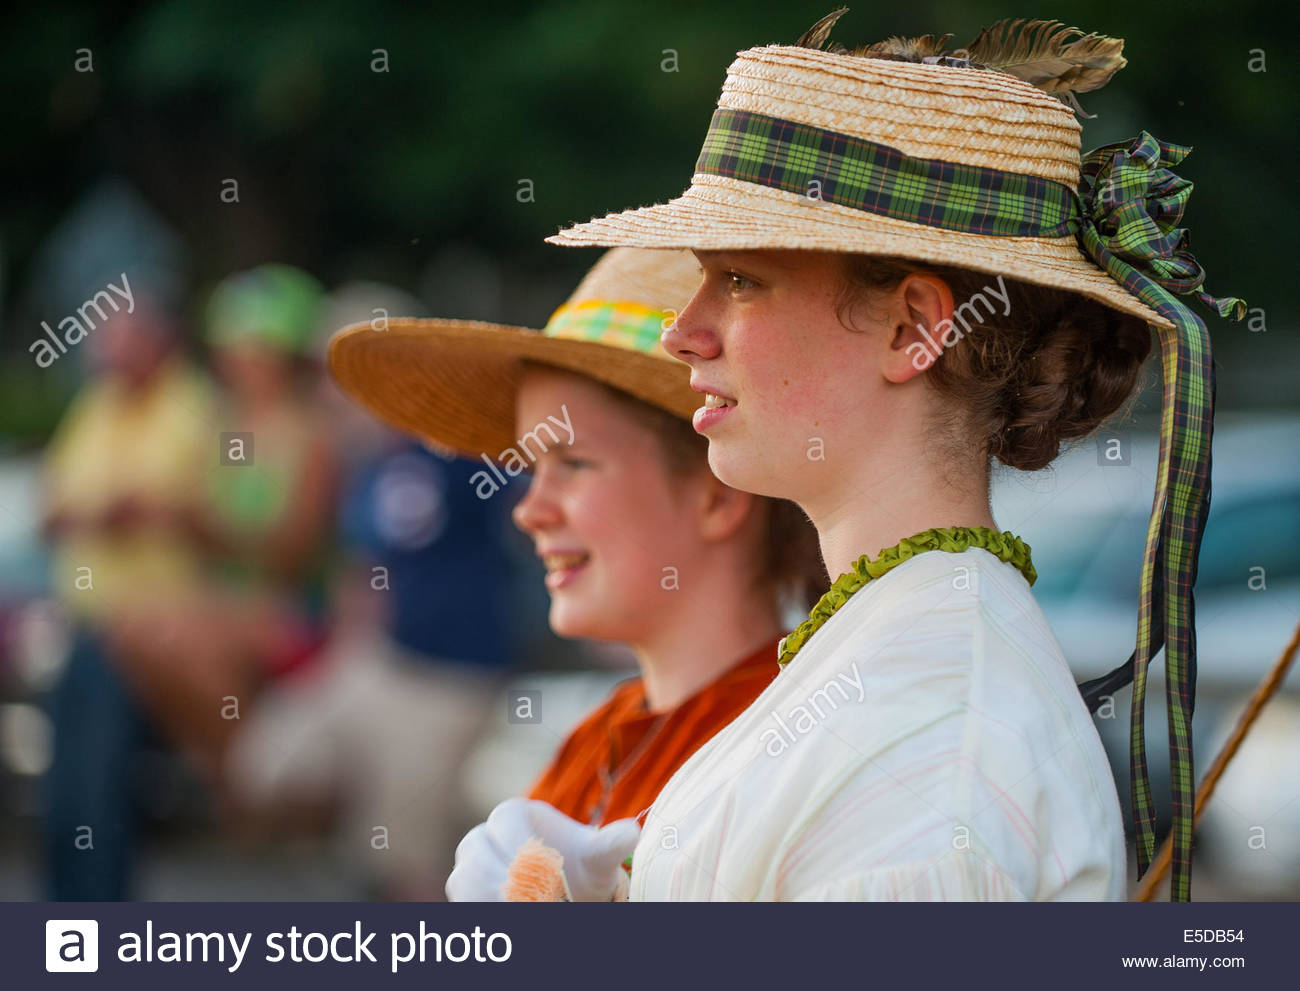 Vancouver, Washington, US. 26th July, 2014. Young girls ''of the 1860's'' watch the reenactment - Stock Image